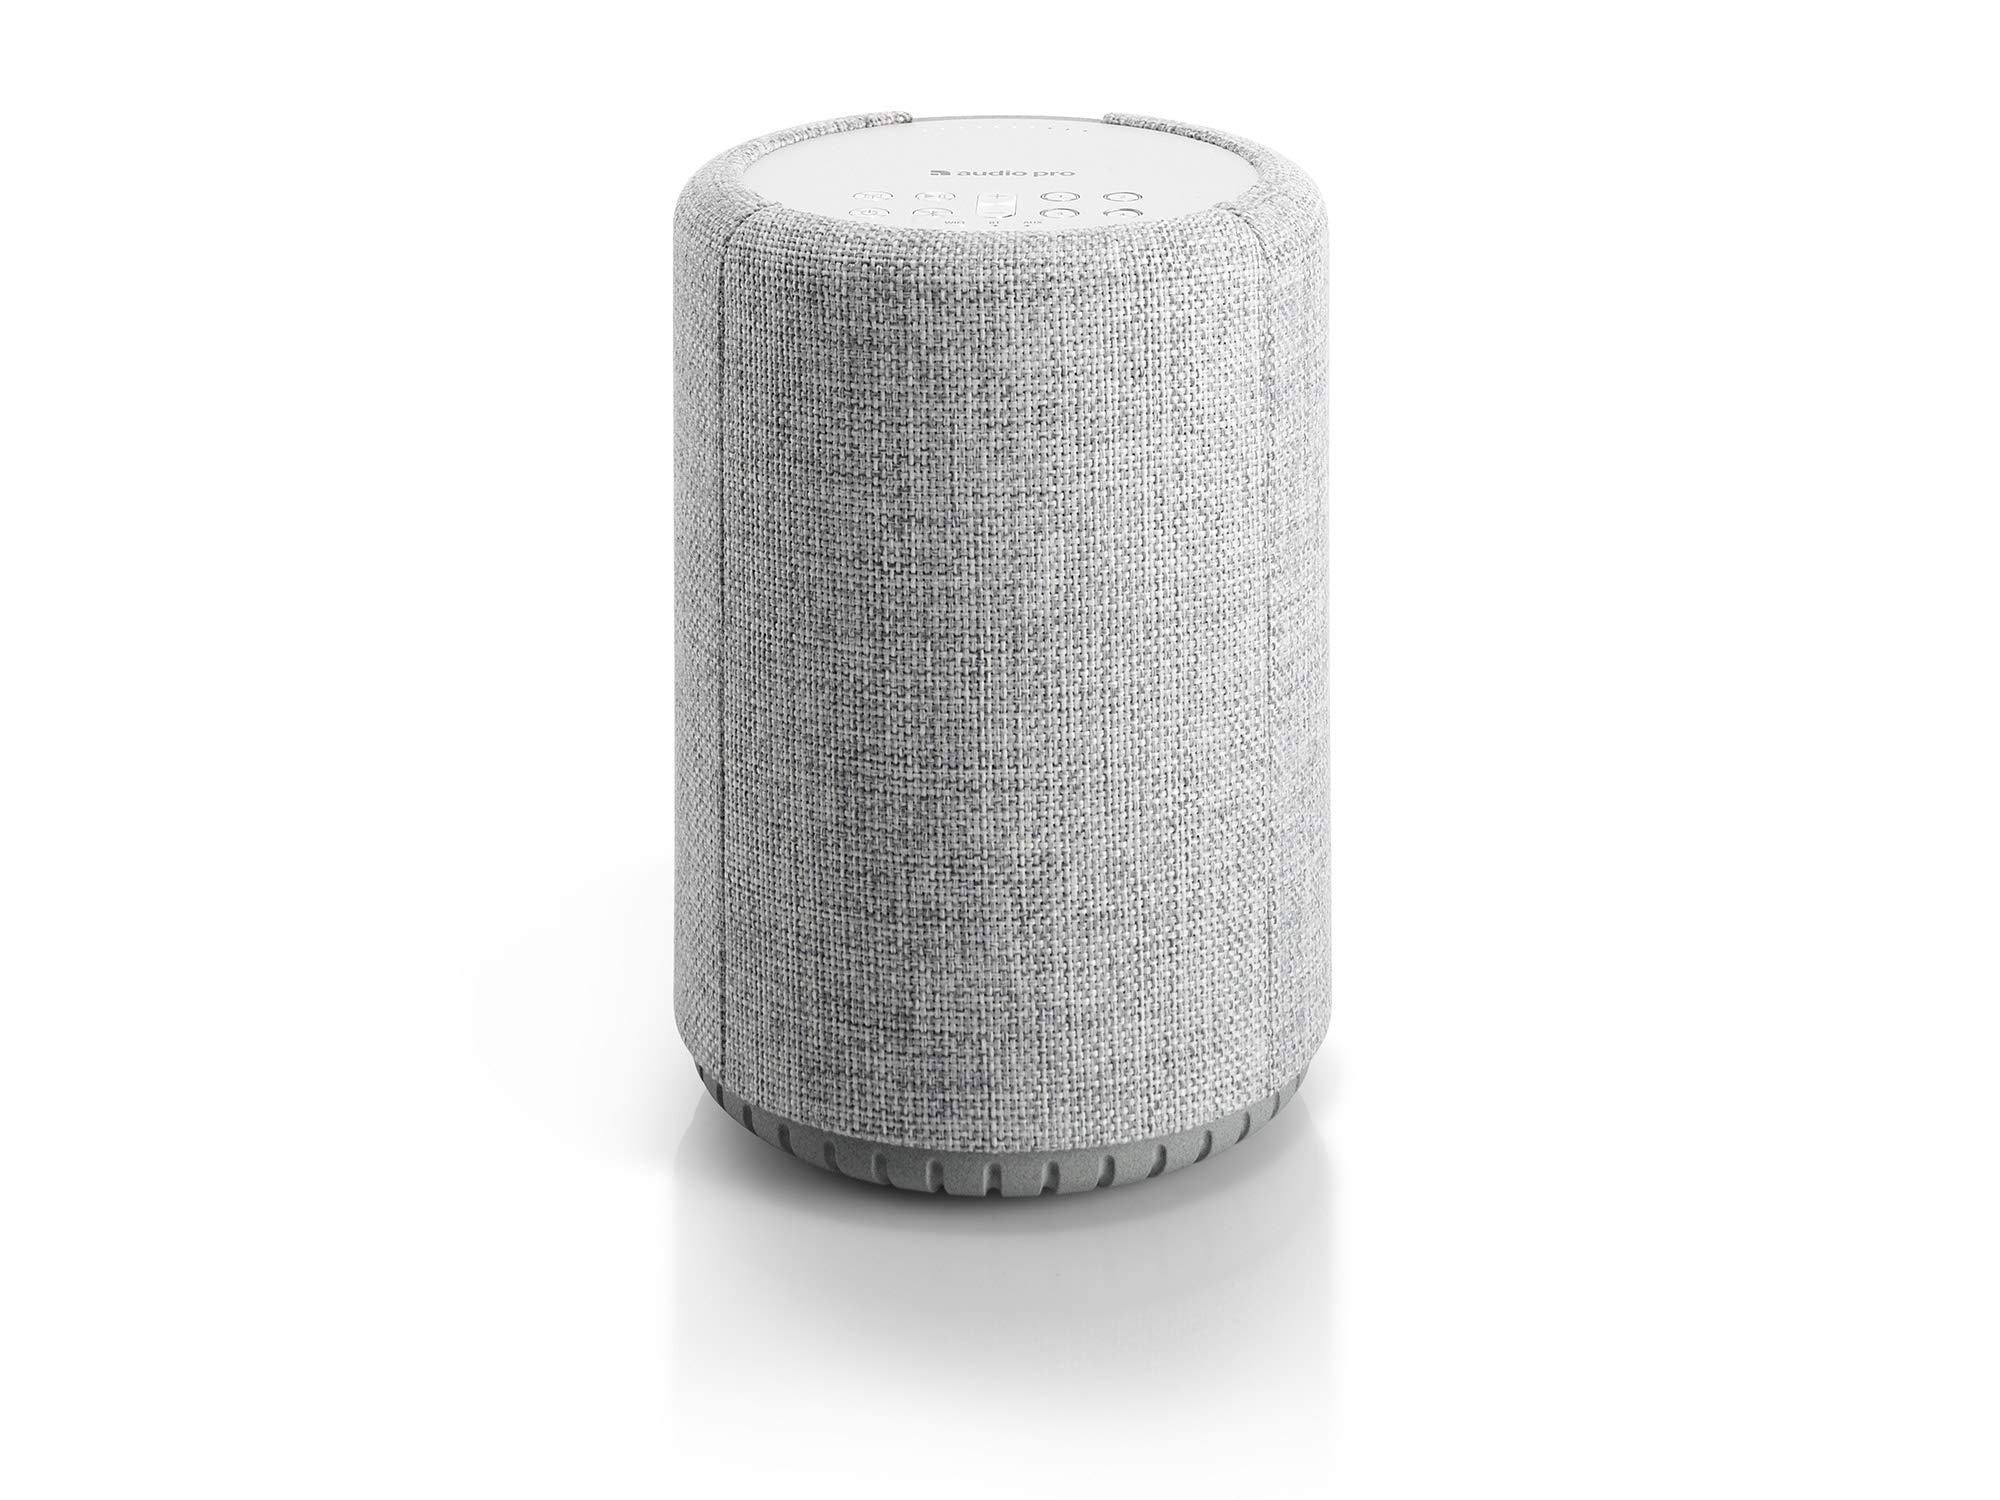 Audio Pro A10 Wireless Multi-Room WiFi Bluetooth Connected Speaker - HiFi - Compatible with Alexa - Light Grey